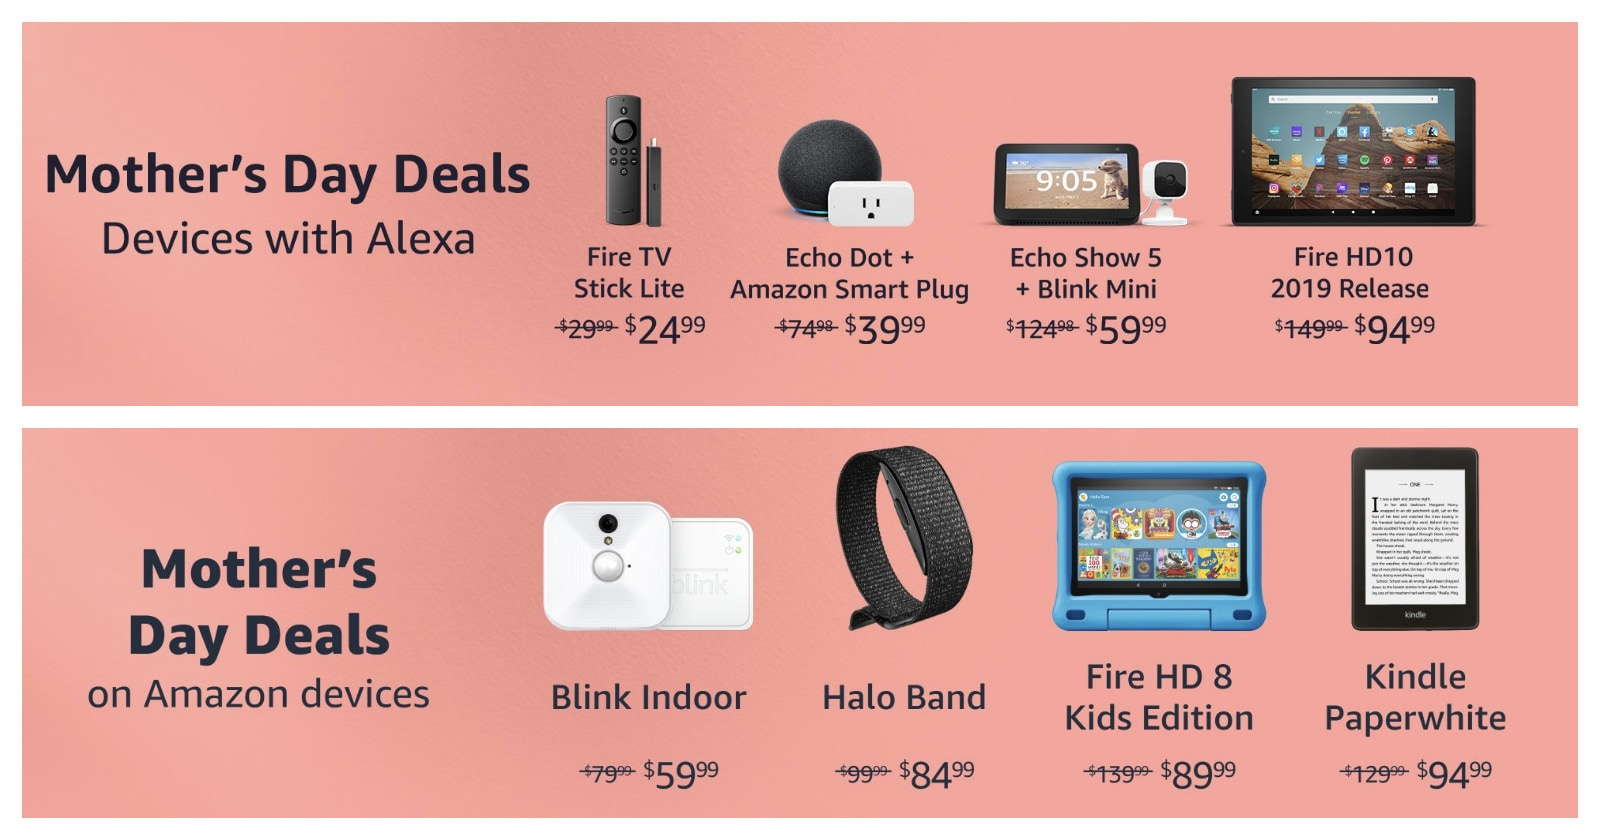 Mother's Day 2021 deals on Amazon devices Kindle Fire more